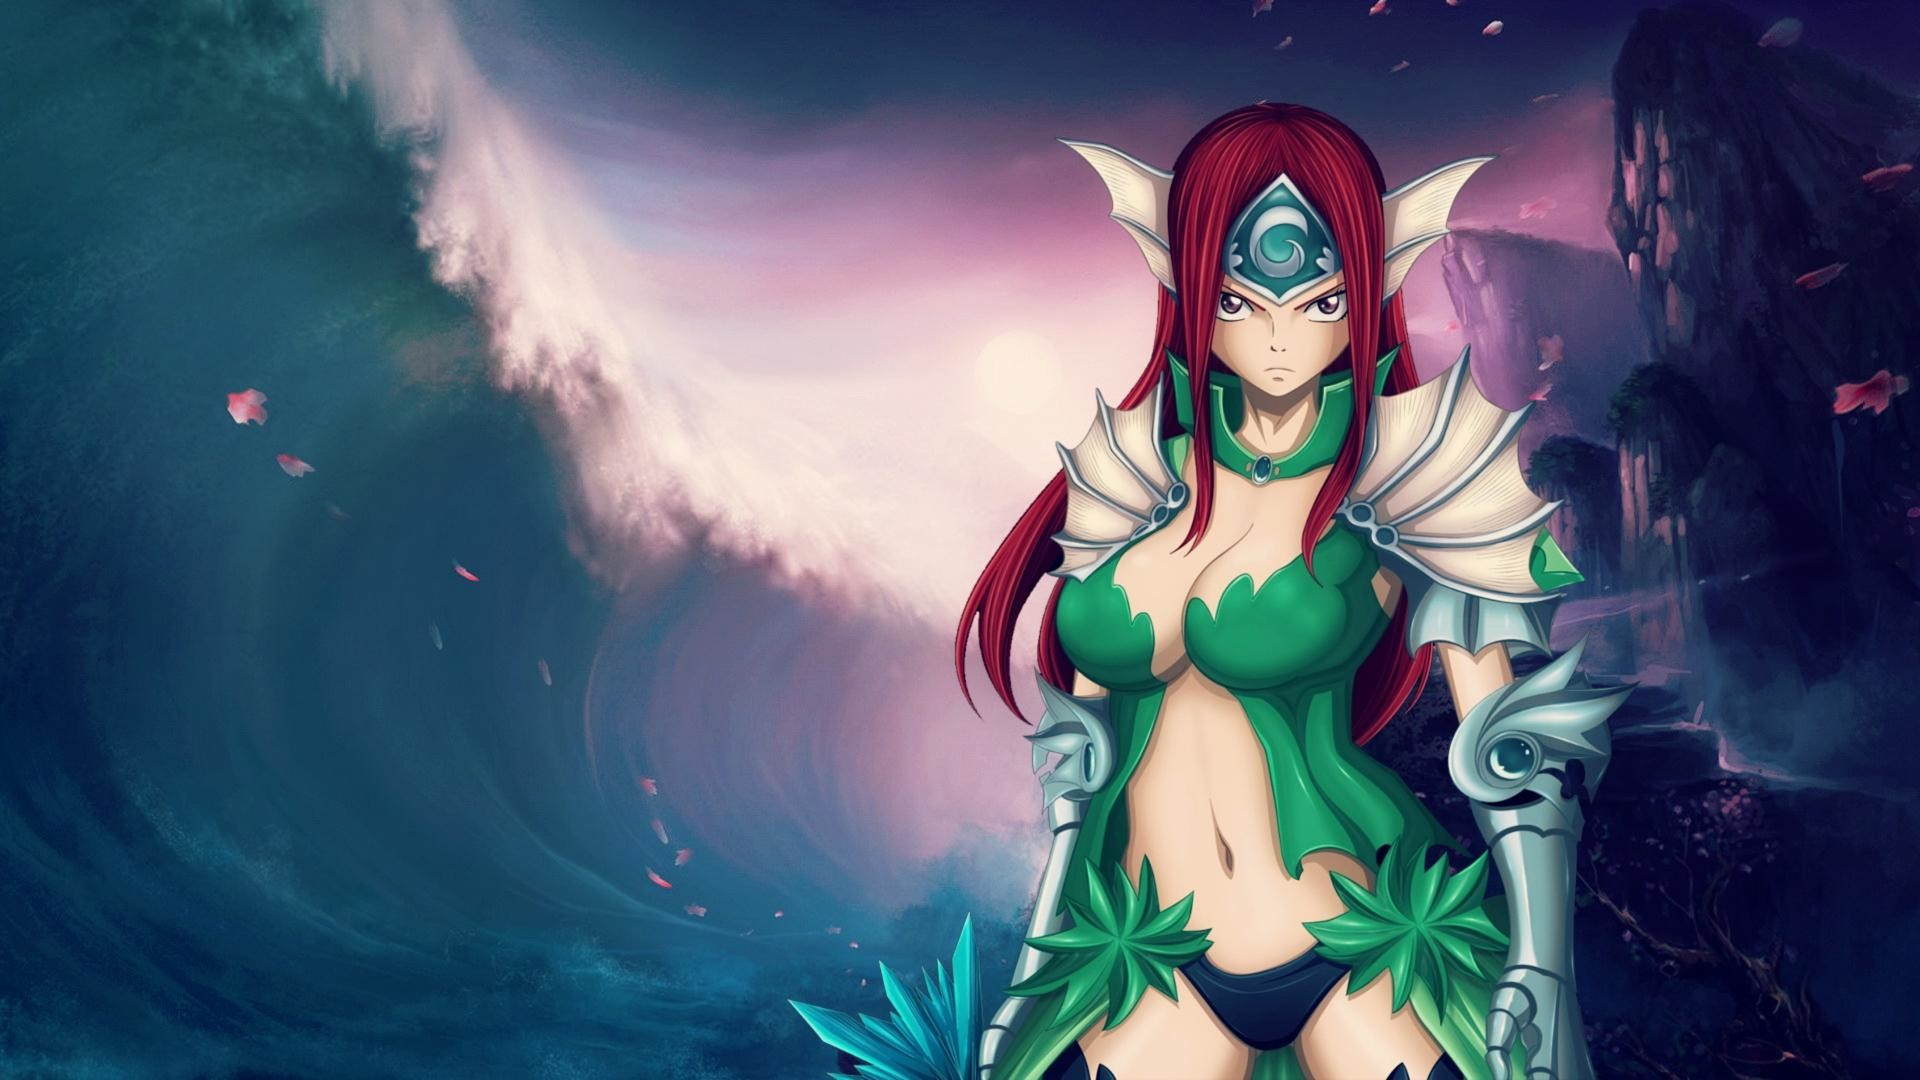 Hd Anime Wallpapers 84 Background Pictures